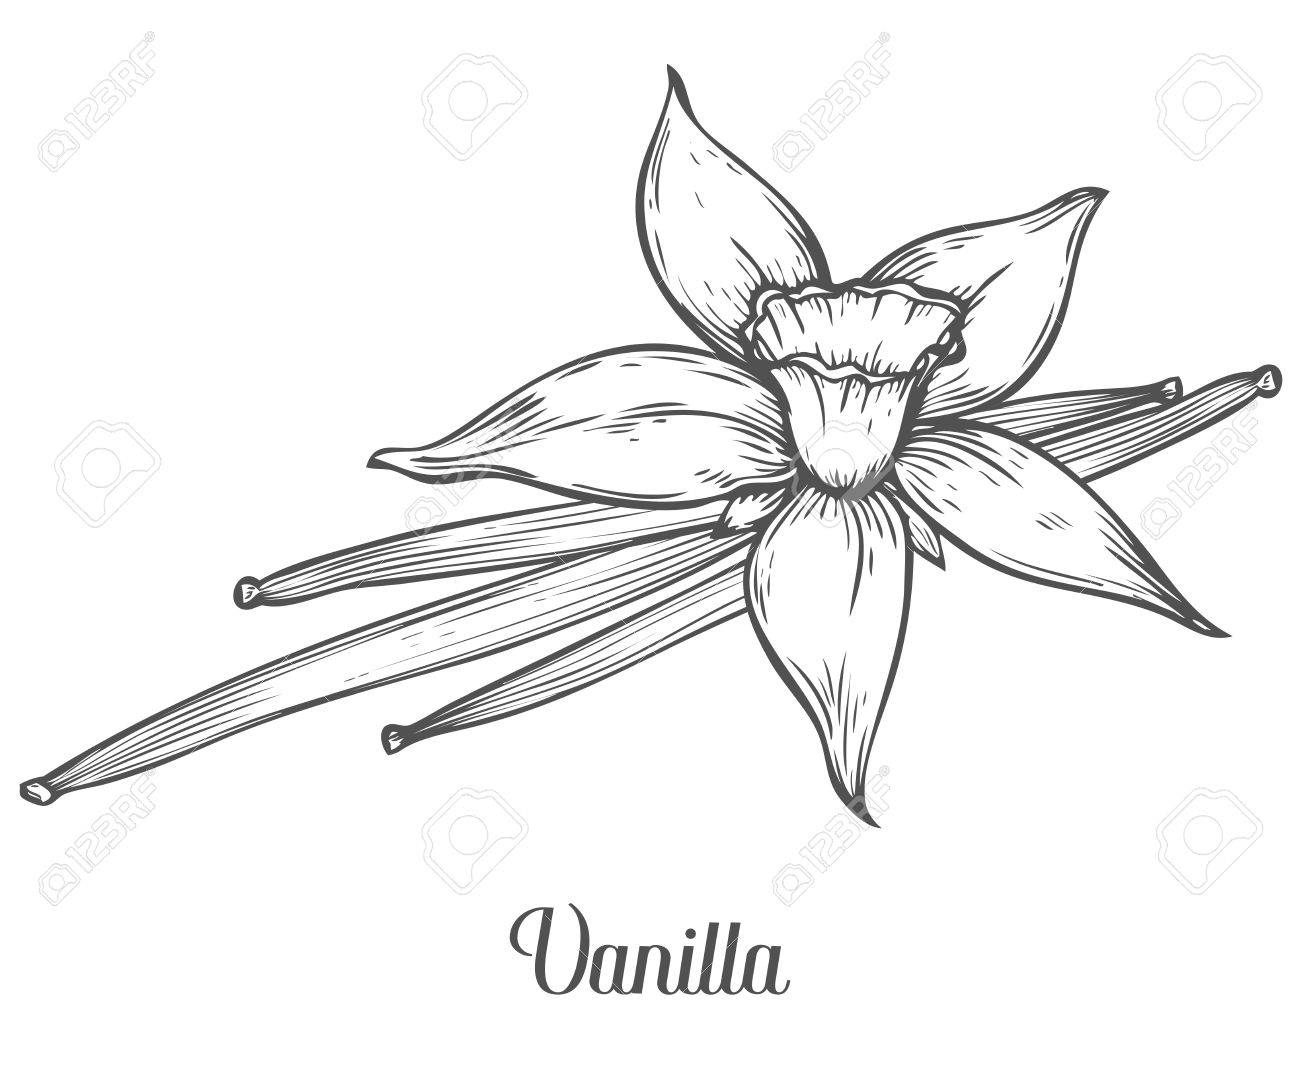 Vanilla flower seed plant branch leaf. Hand drawn sketch vector illustration isolated on white. Spicy herbs. Vanilla Doodle design cooking ingredient for food, dessert. Seasoning spice herb. - 68349687